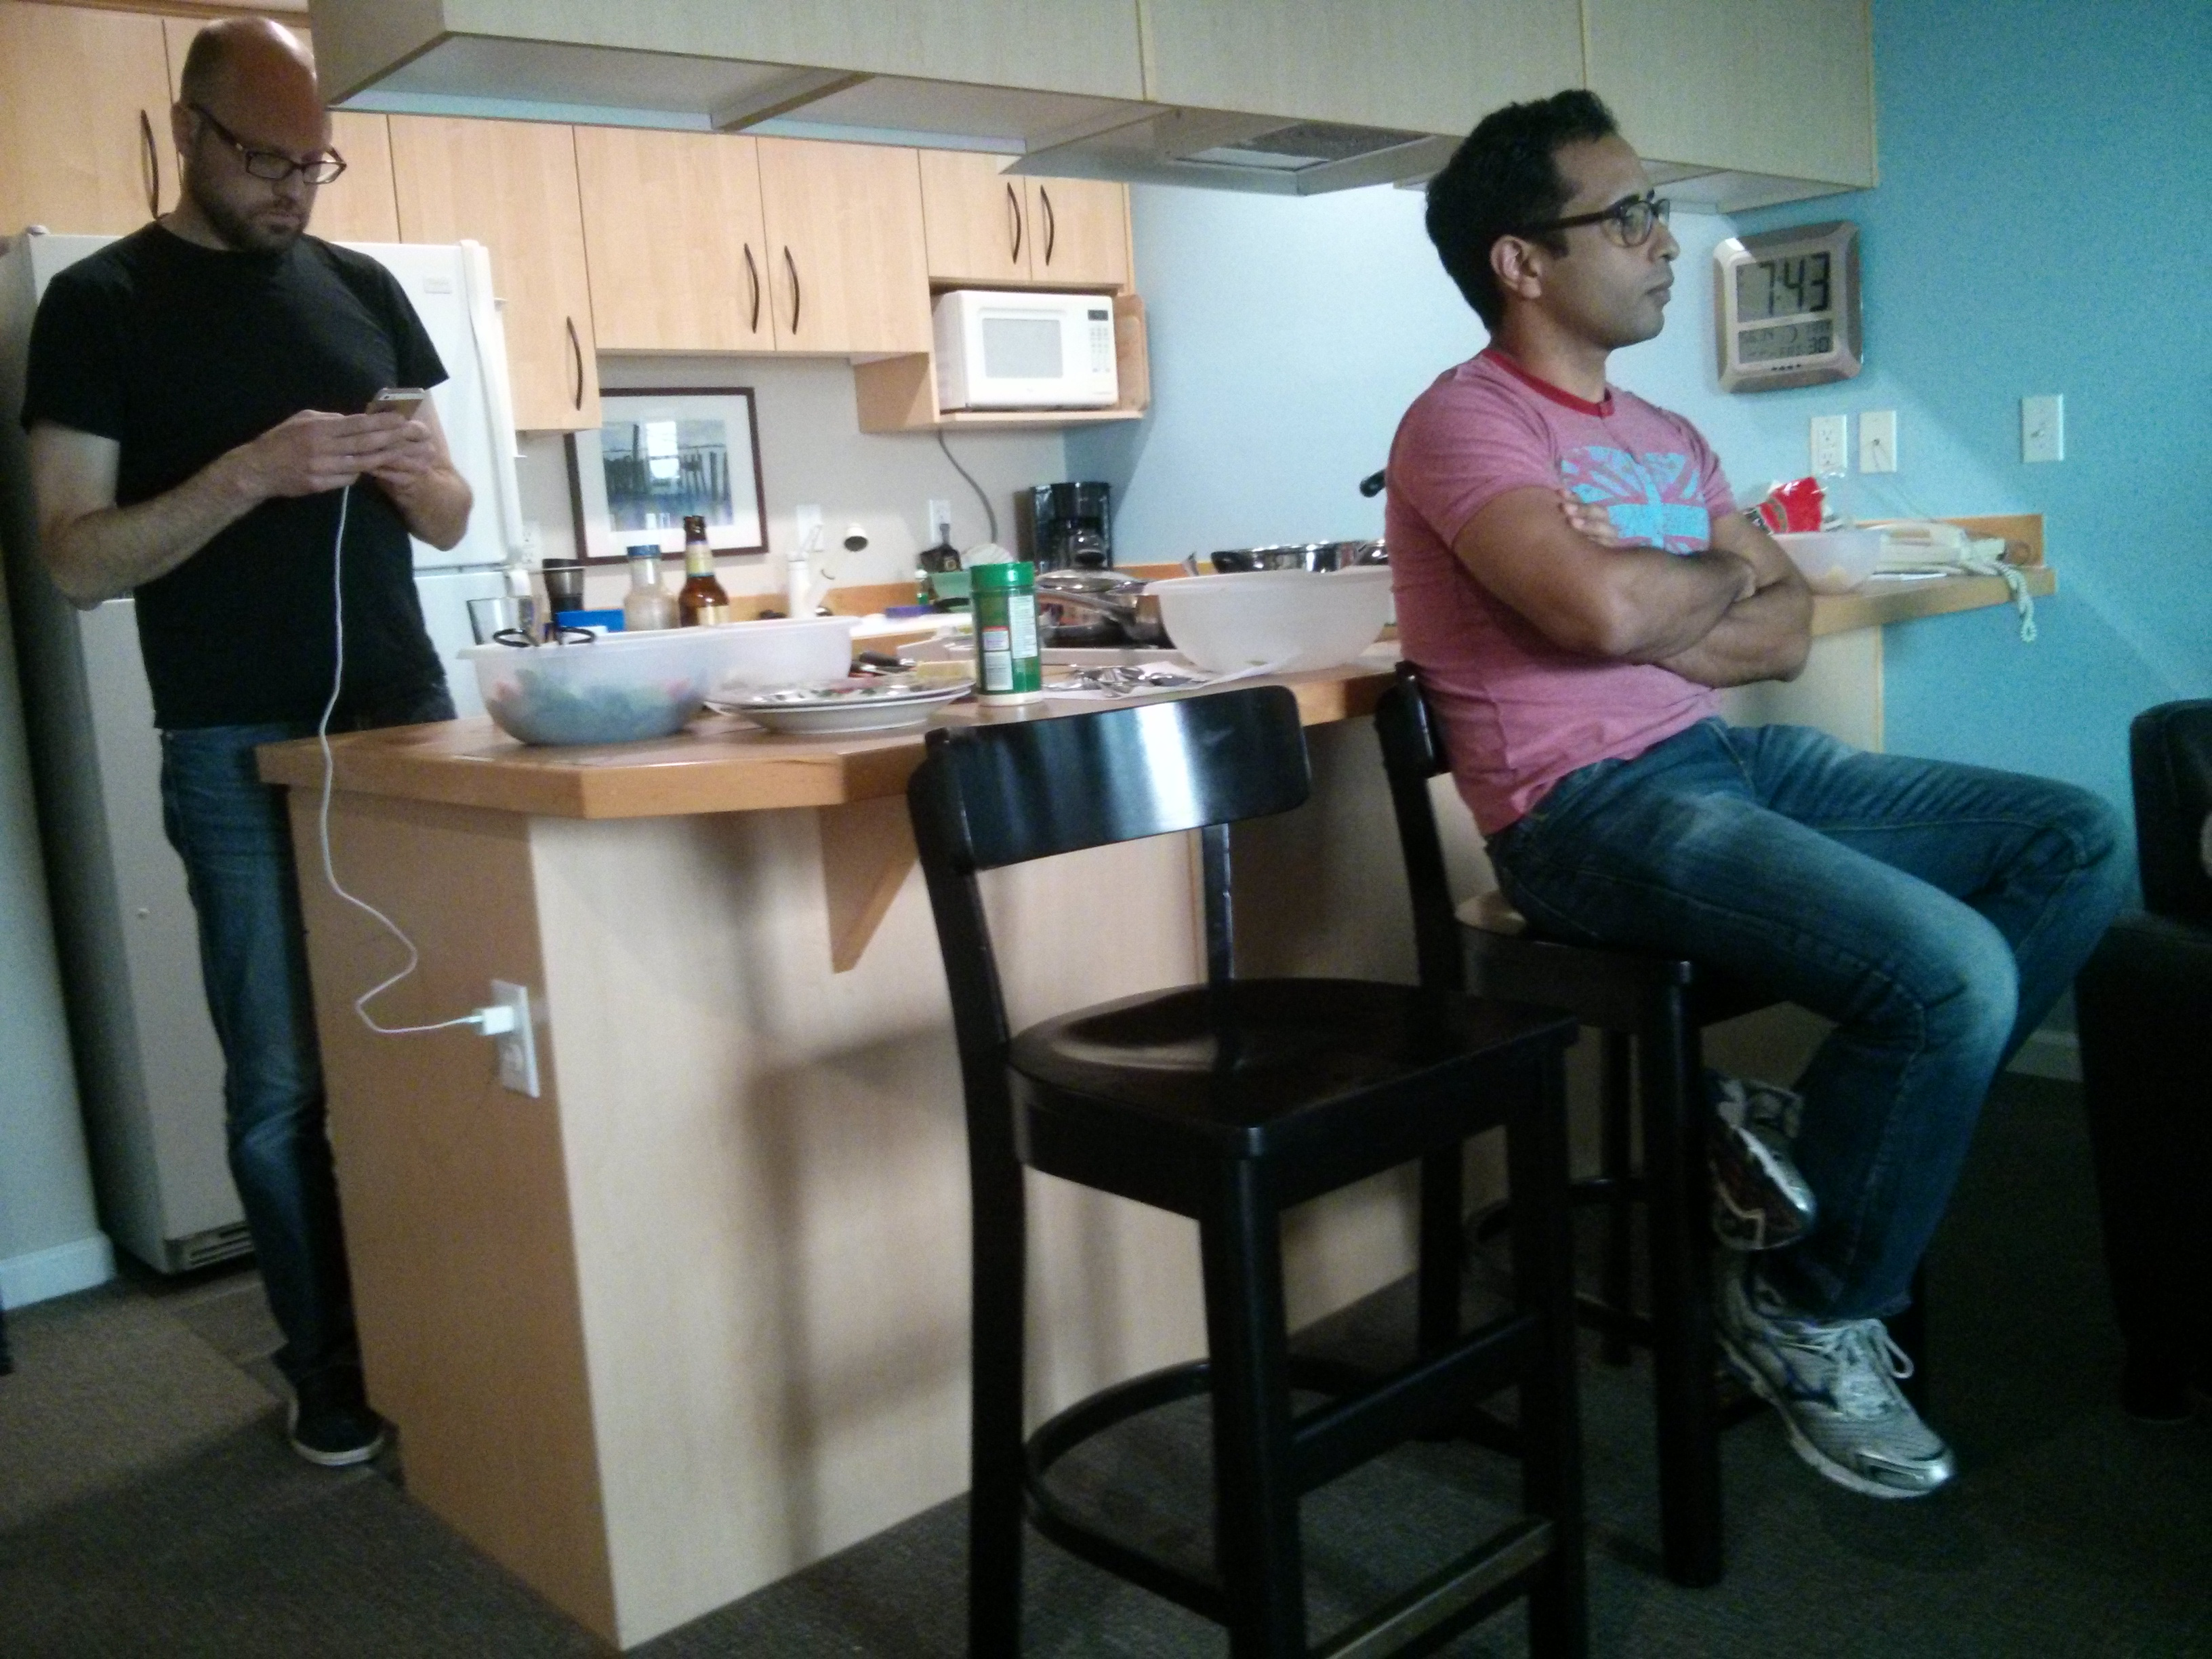 X taking a break from cooking to work while Richard (red) looks on